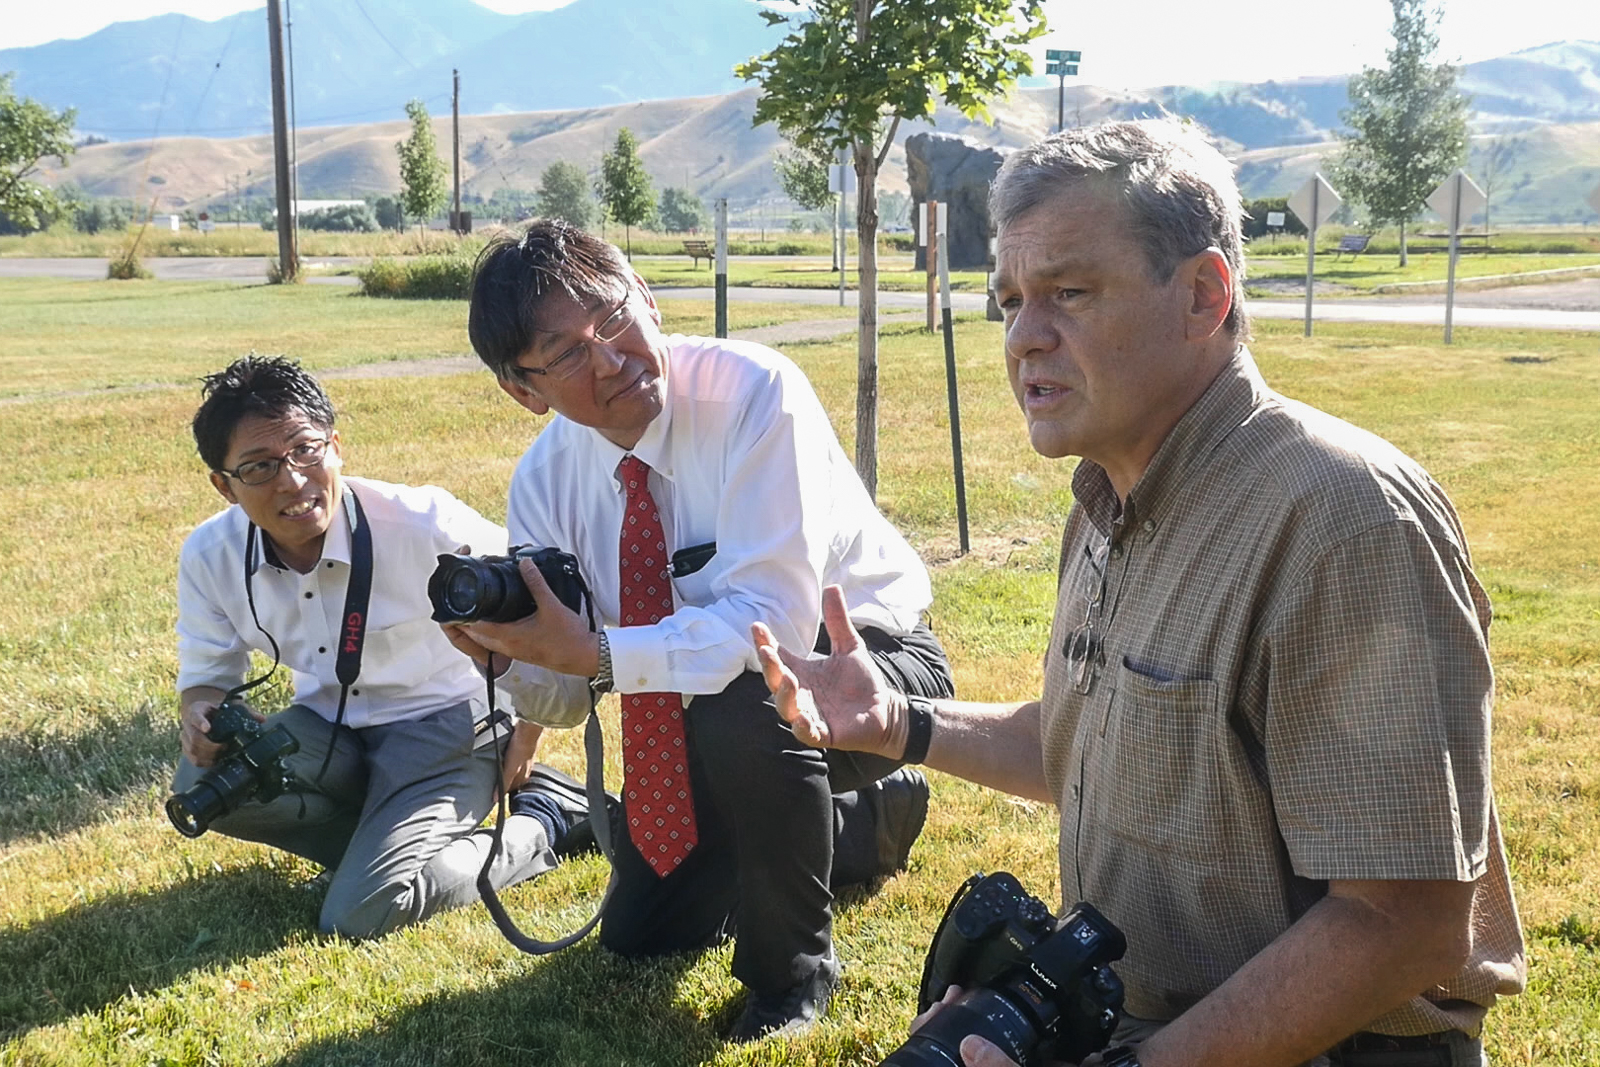 Panasonic Lumix Engineers Visit Bozeman